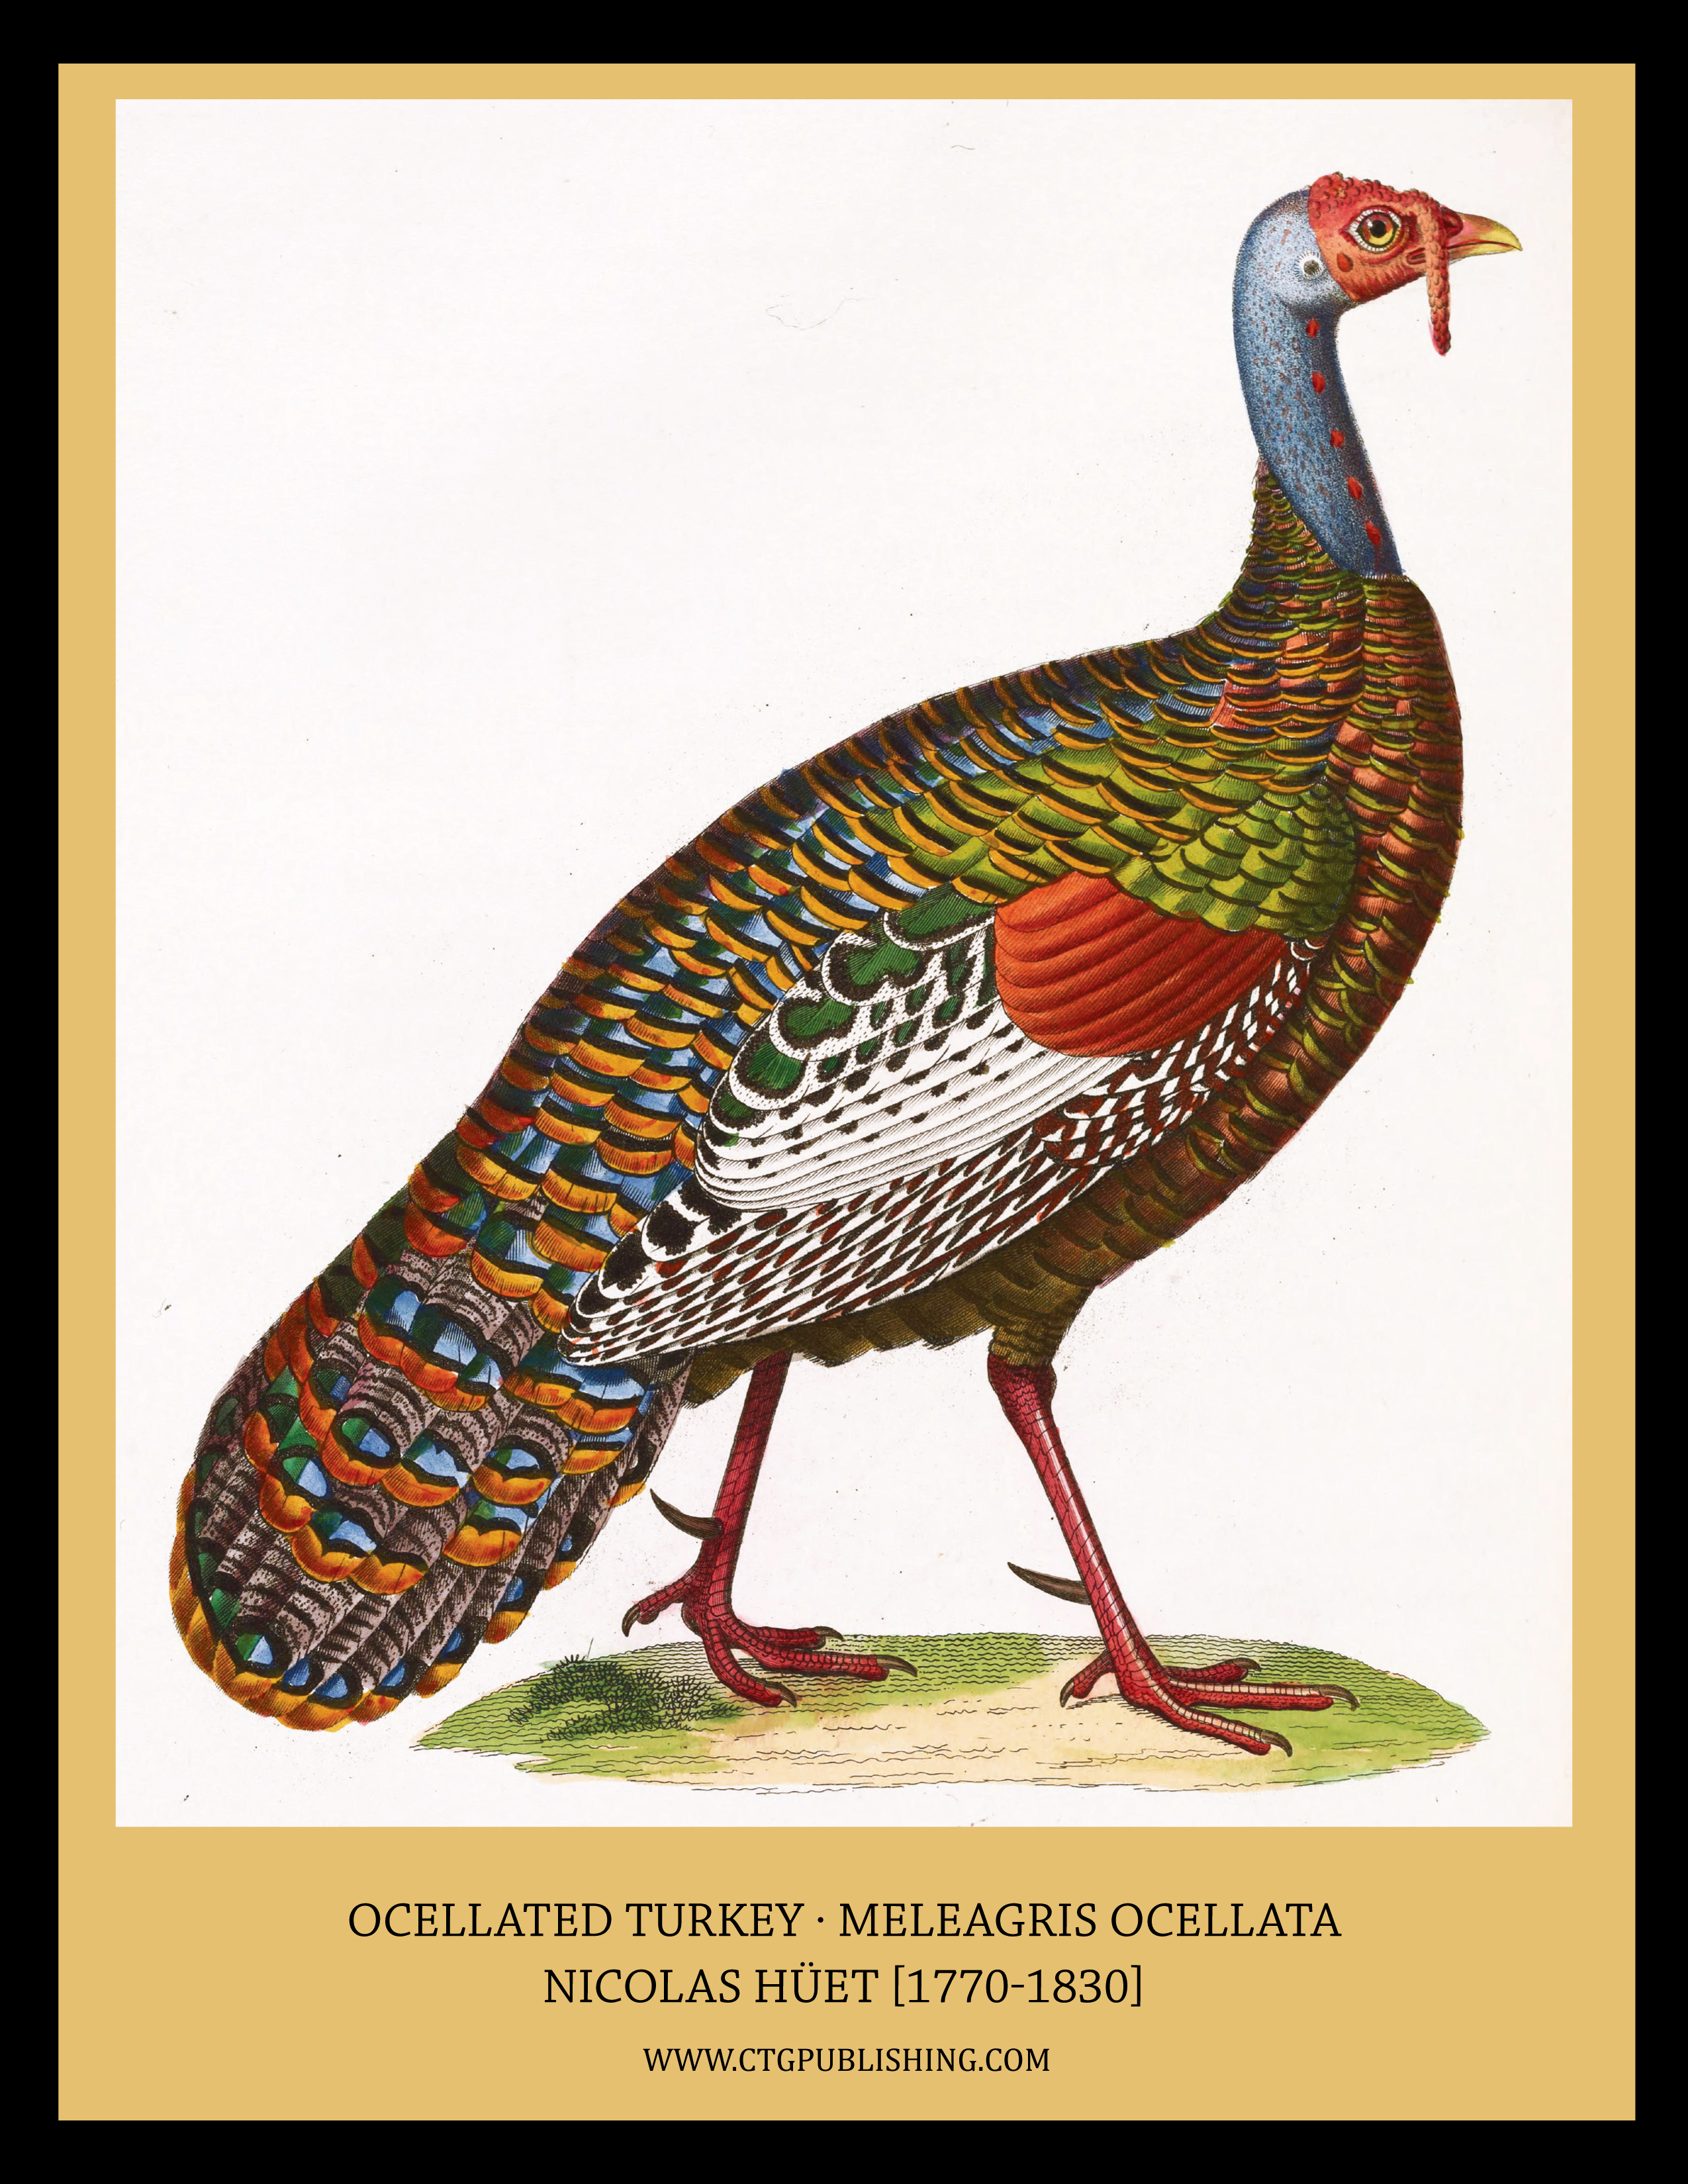 Ocellated Turkey - Illustration by Nicolas Huet